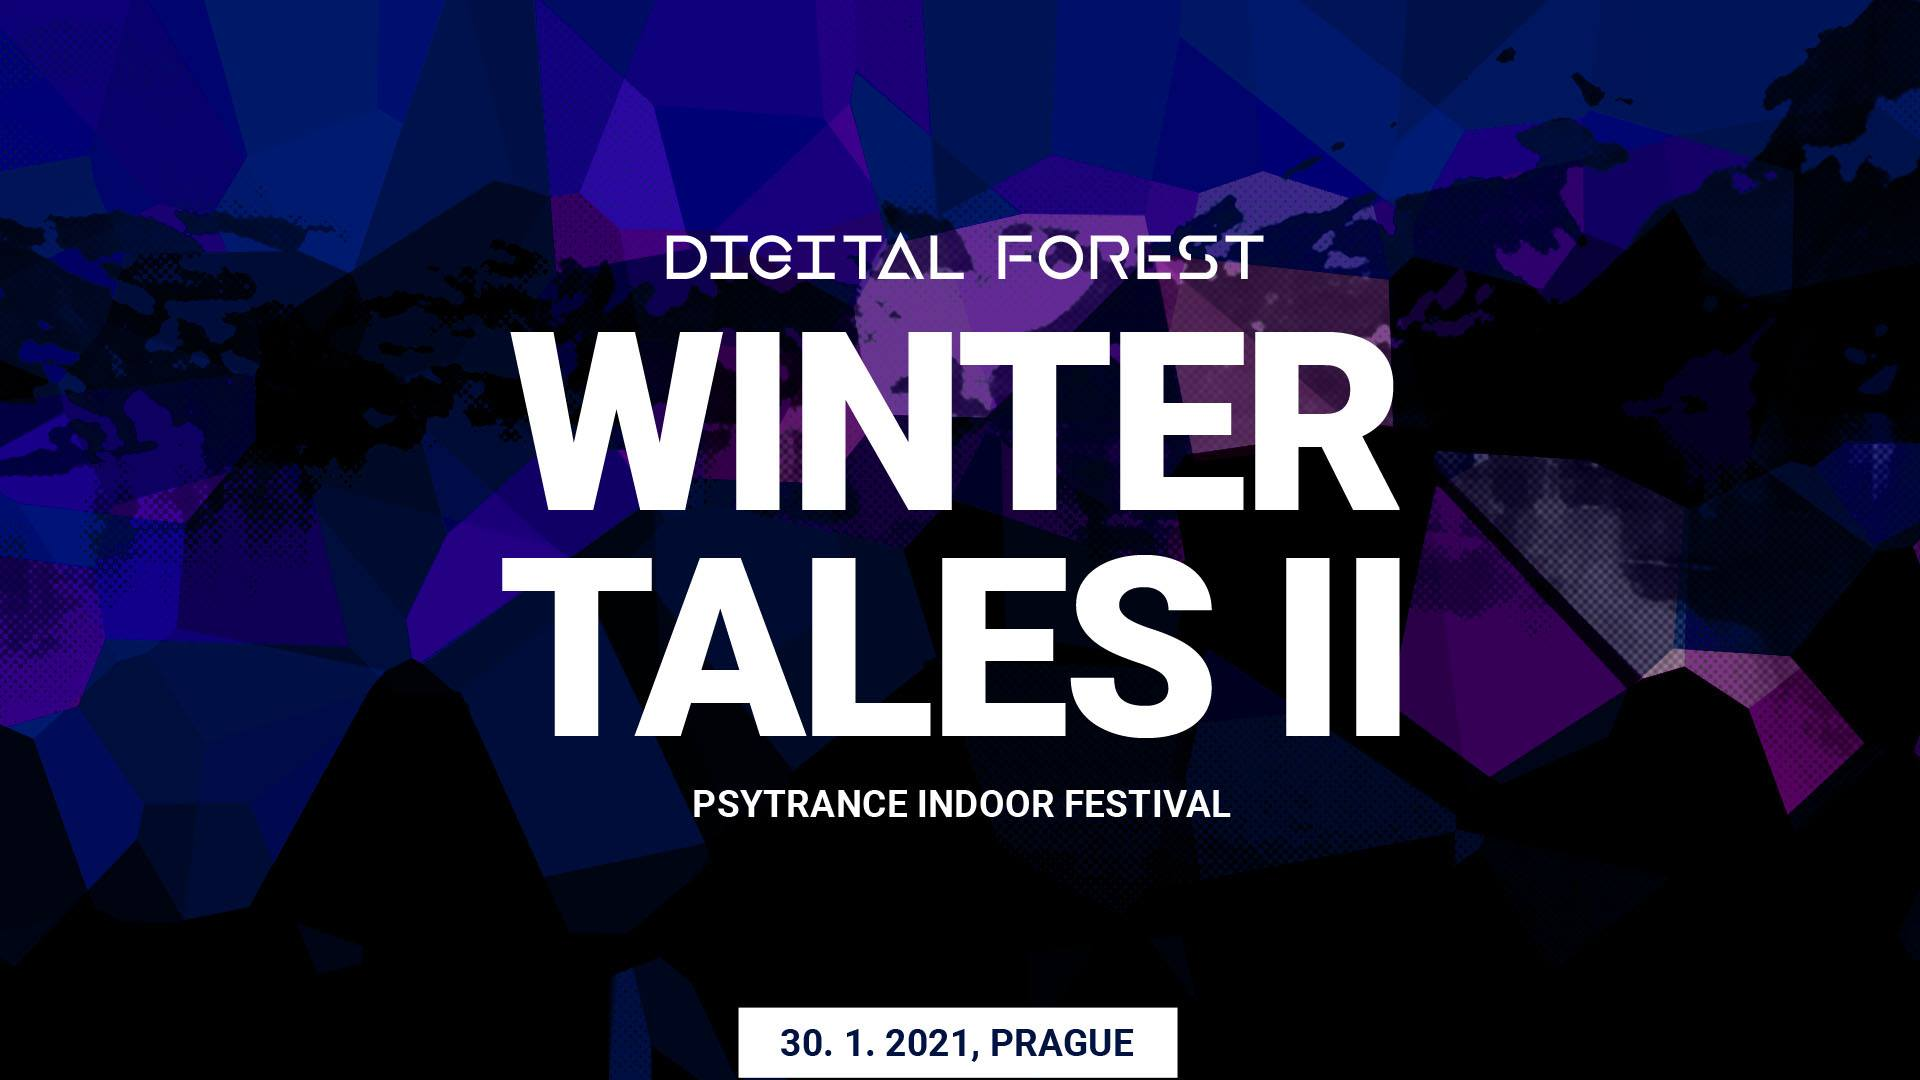 Winter Tales II flyer